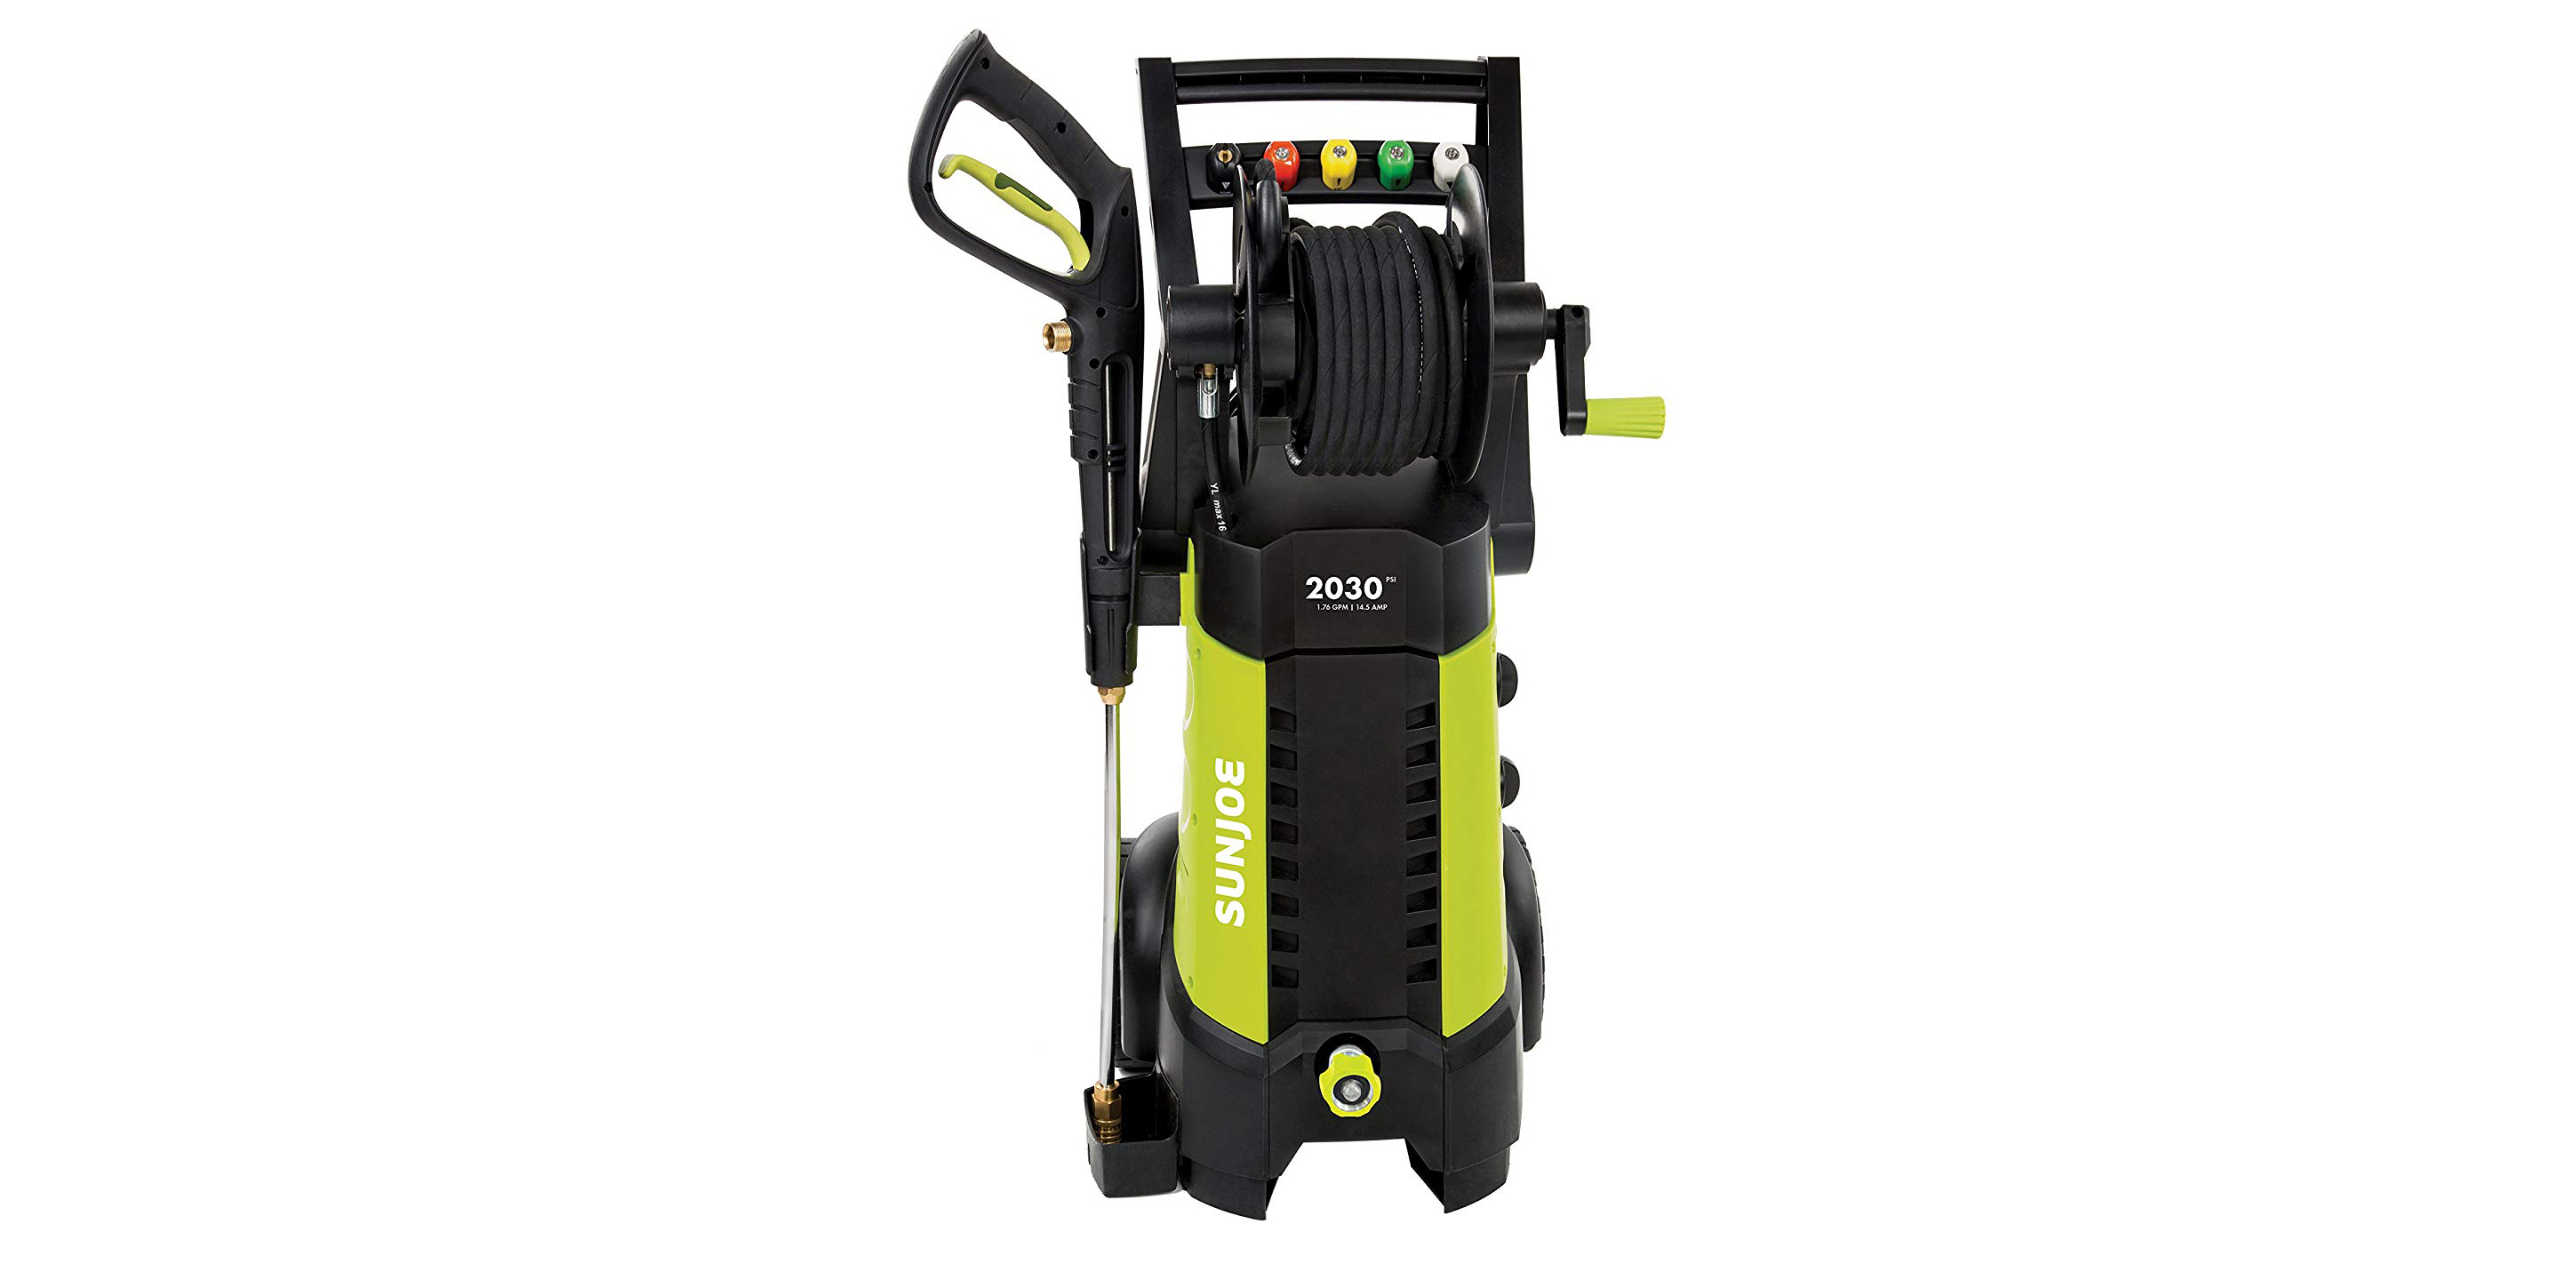 Sun Joe 14.5A Electric Pressure Washer returns to Amazon low at $119.50 (Reg. $180)